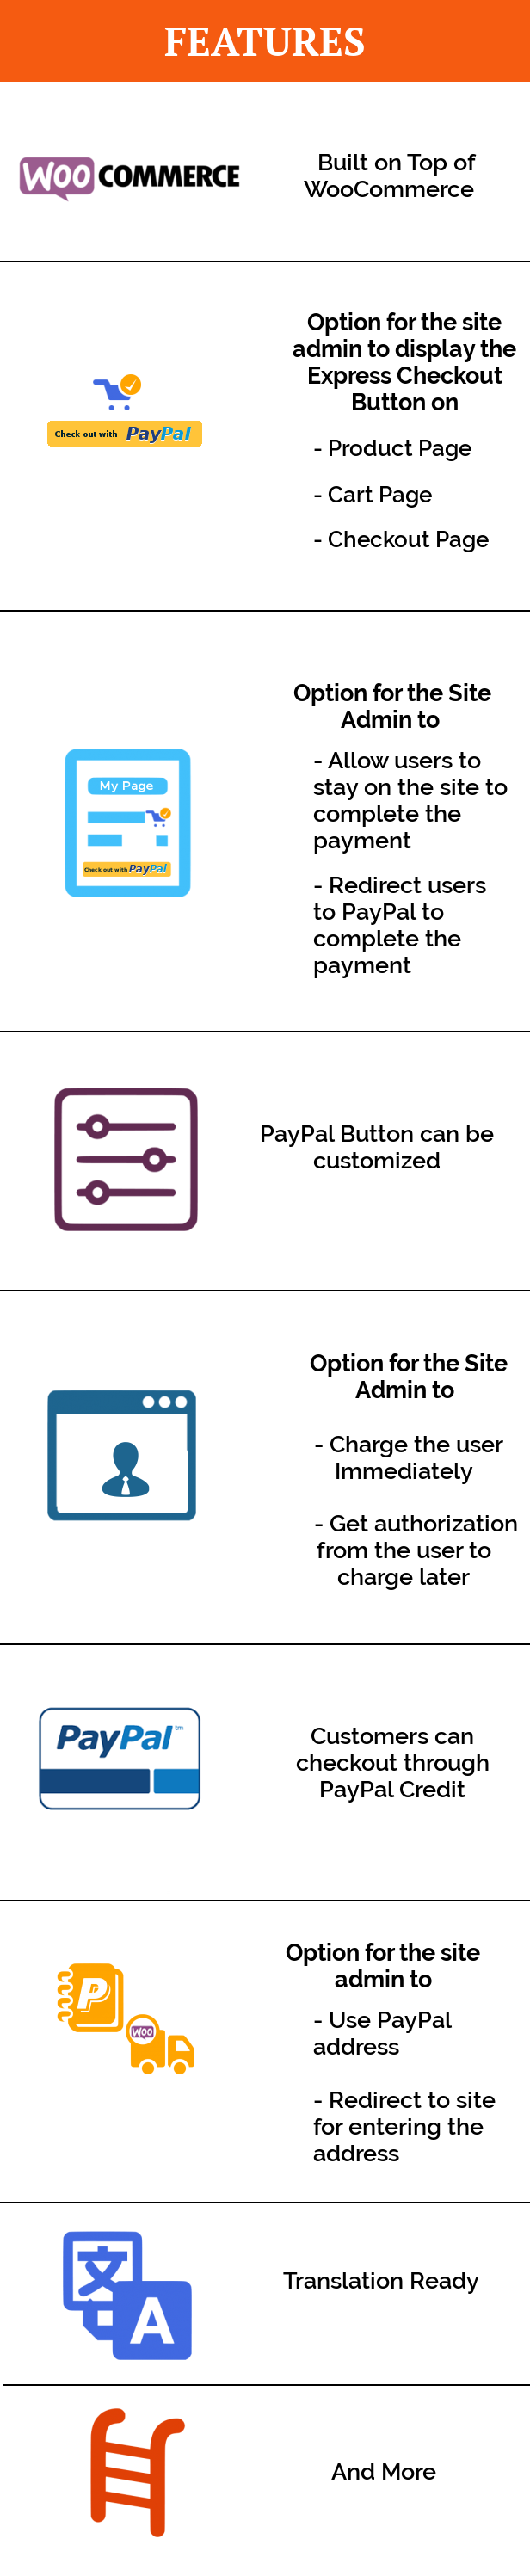 paypal-express-checkout-infographics_image-1